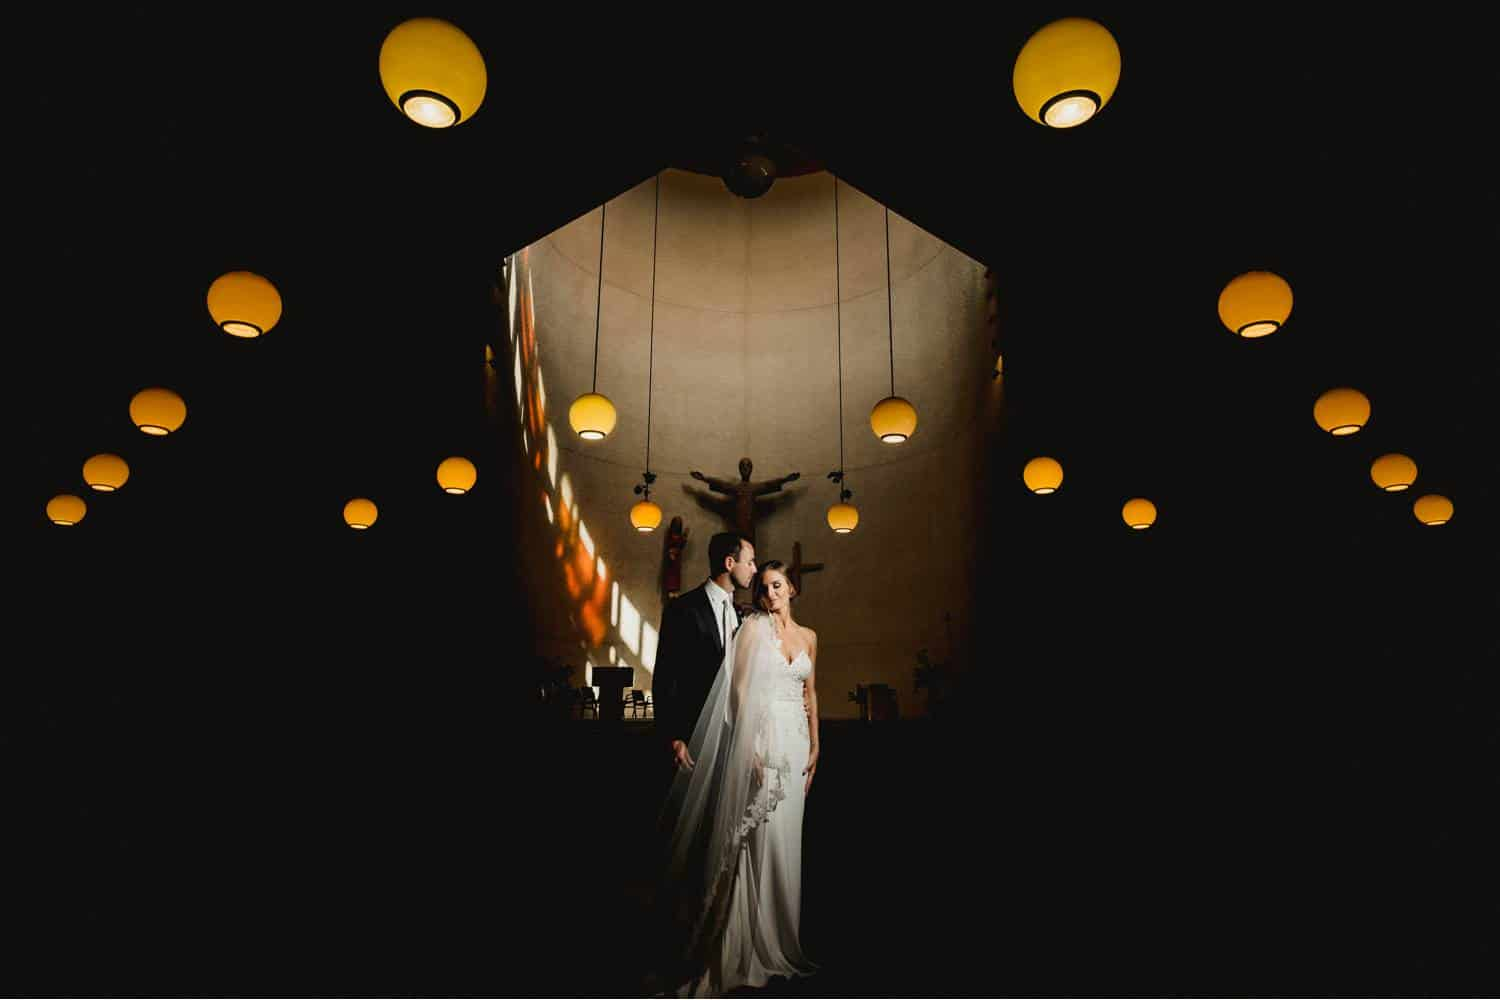 A bride wearing a long veil stands calmly beside a groom who looks solemnly at her face. Behind them, the sculpture of a saint is centered on a broad wall surrounded by round, hanging lamps. Black & Gold Photography makes stunning wedding portraits using off-camera flash.